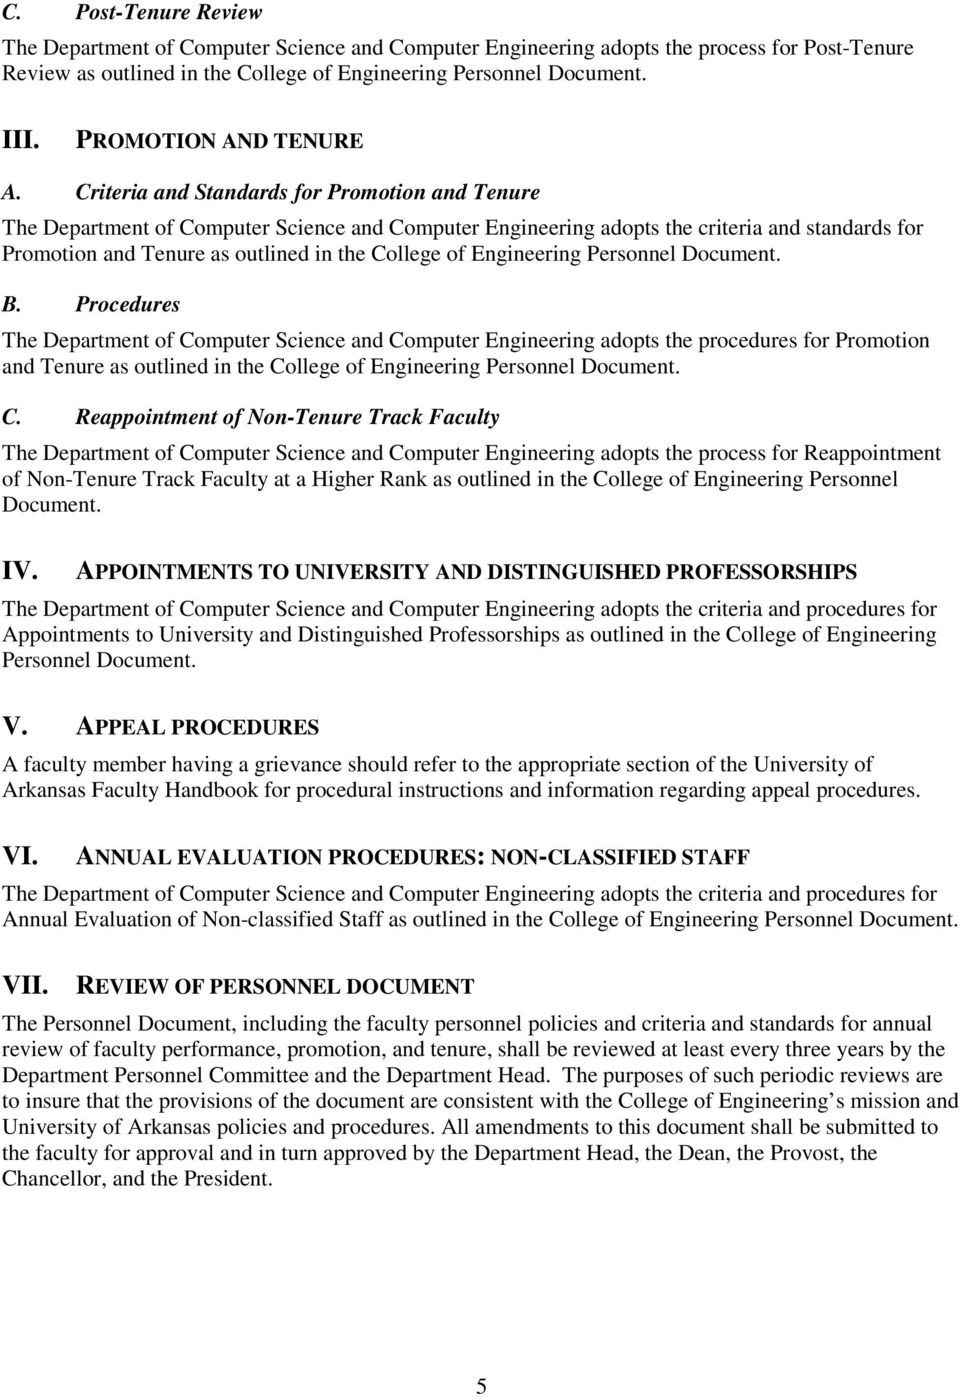 Criteria and Standards for Promotion and Tenure The Department of Computer Science and Computer Engineering adopts the criteria and standards for Promotion and Tenure as outlined in the College of